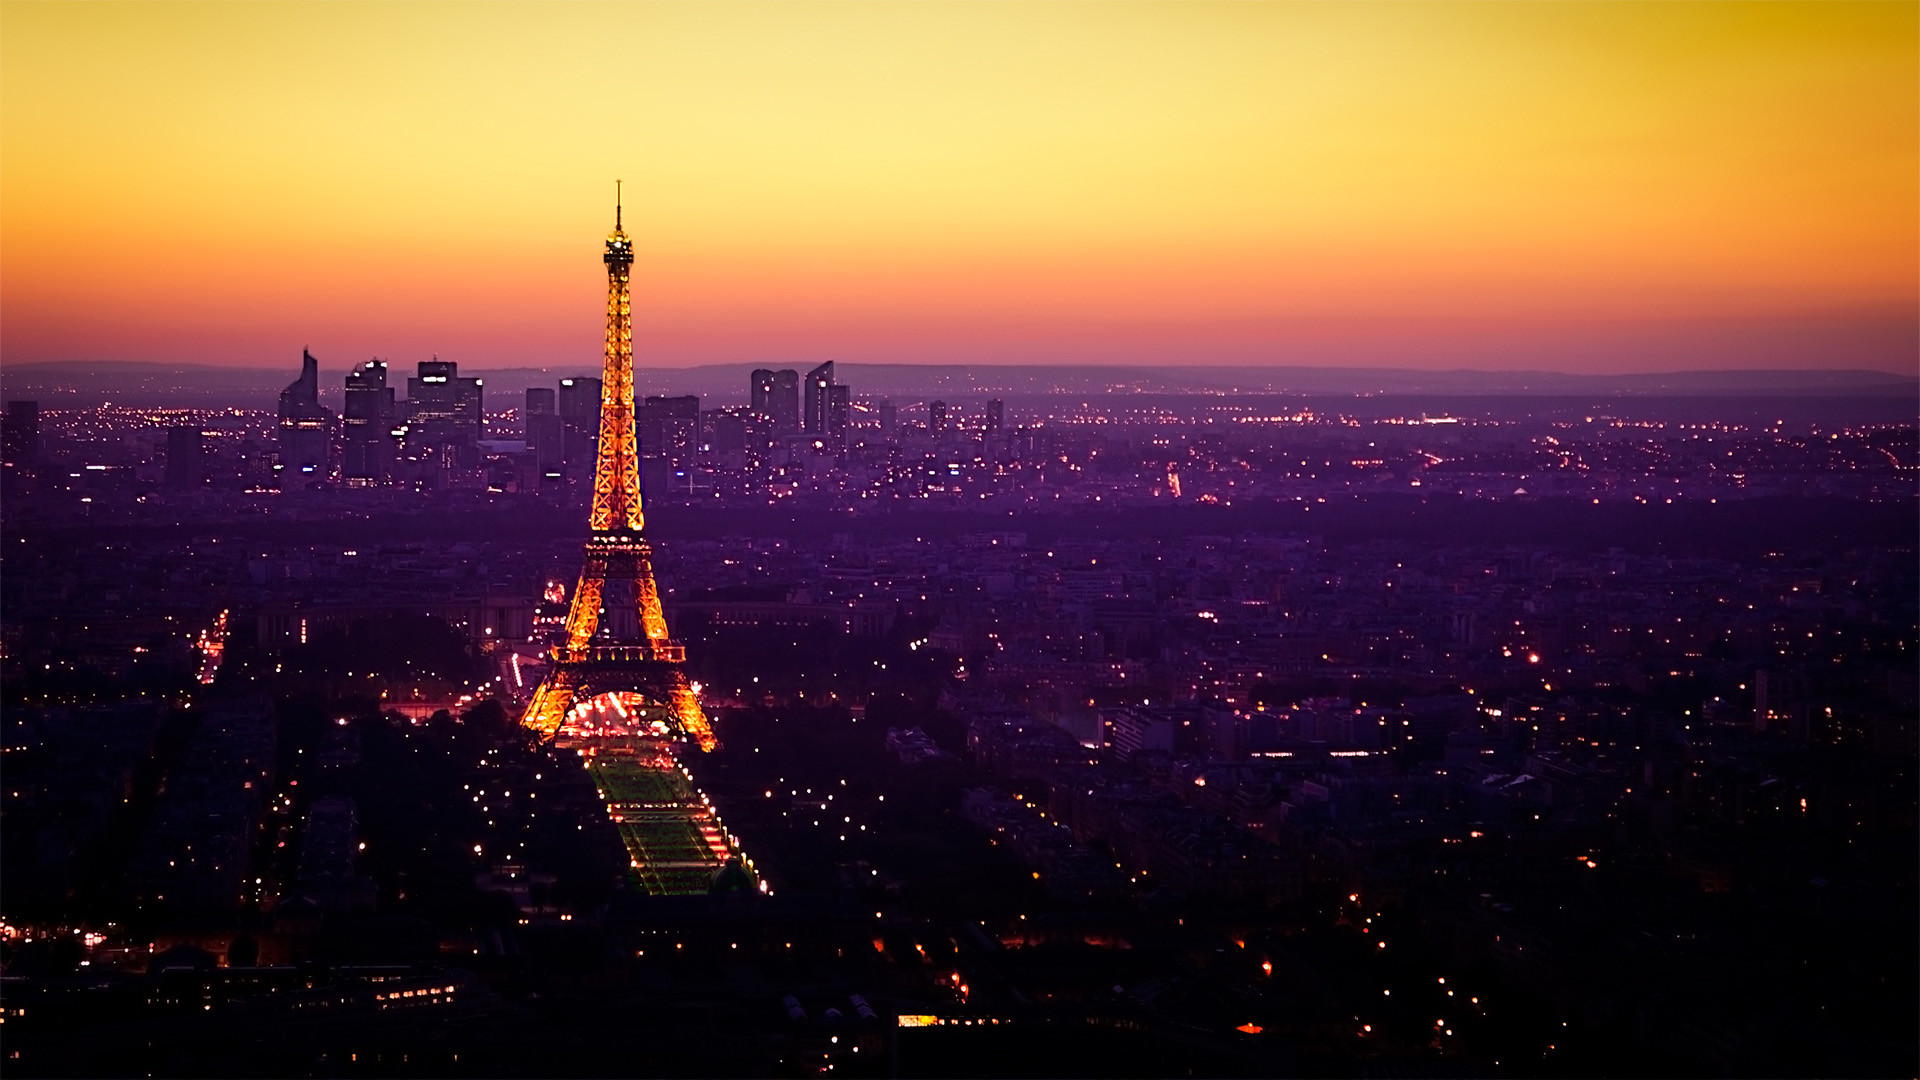 Free Download Paris Wallpaper Hd Wallpapers 1920x1080 For Your